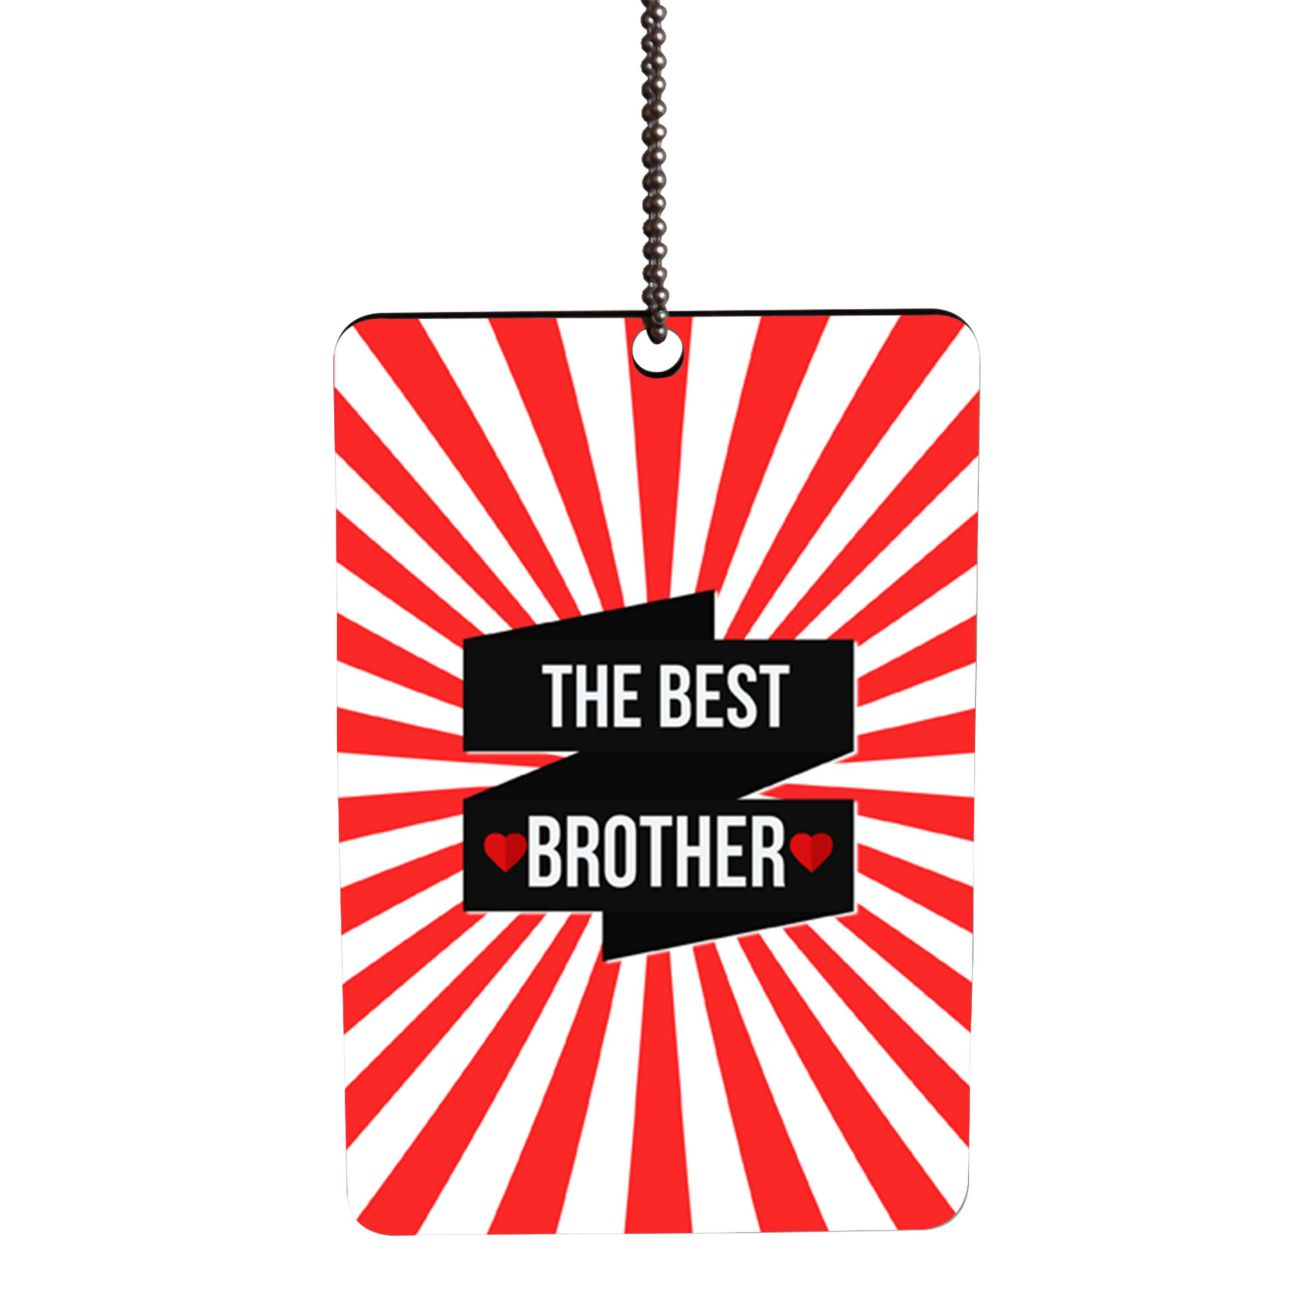 The Best Brother Car Hanging